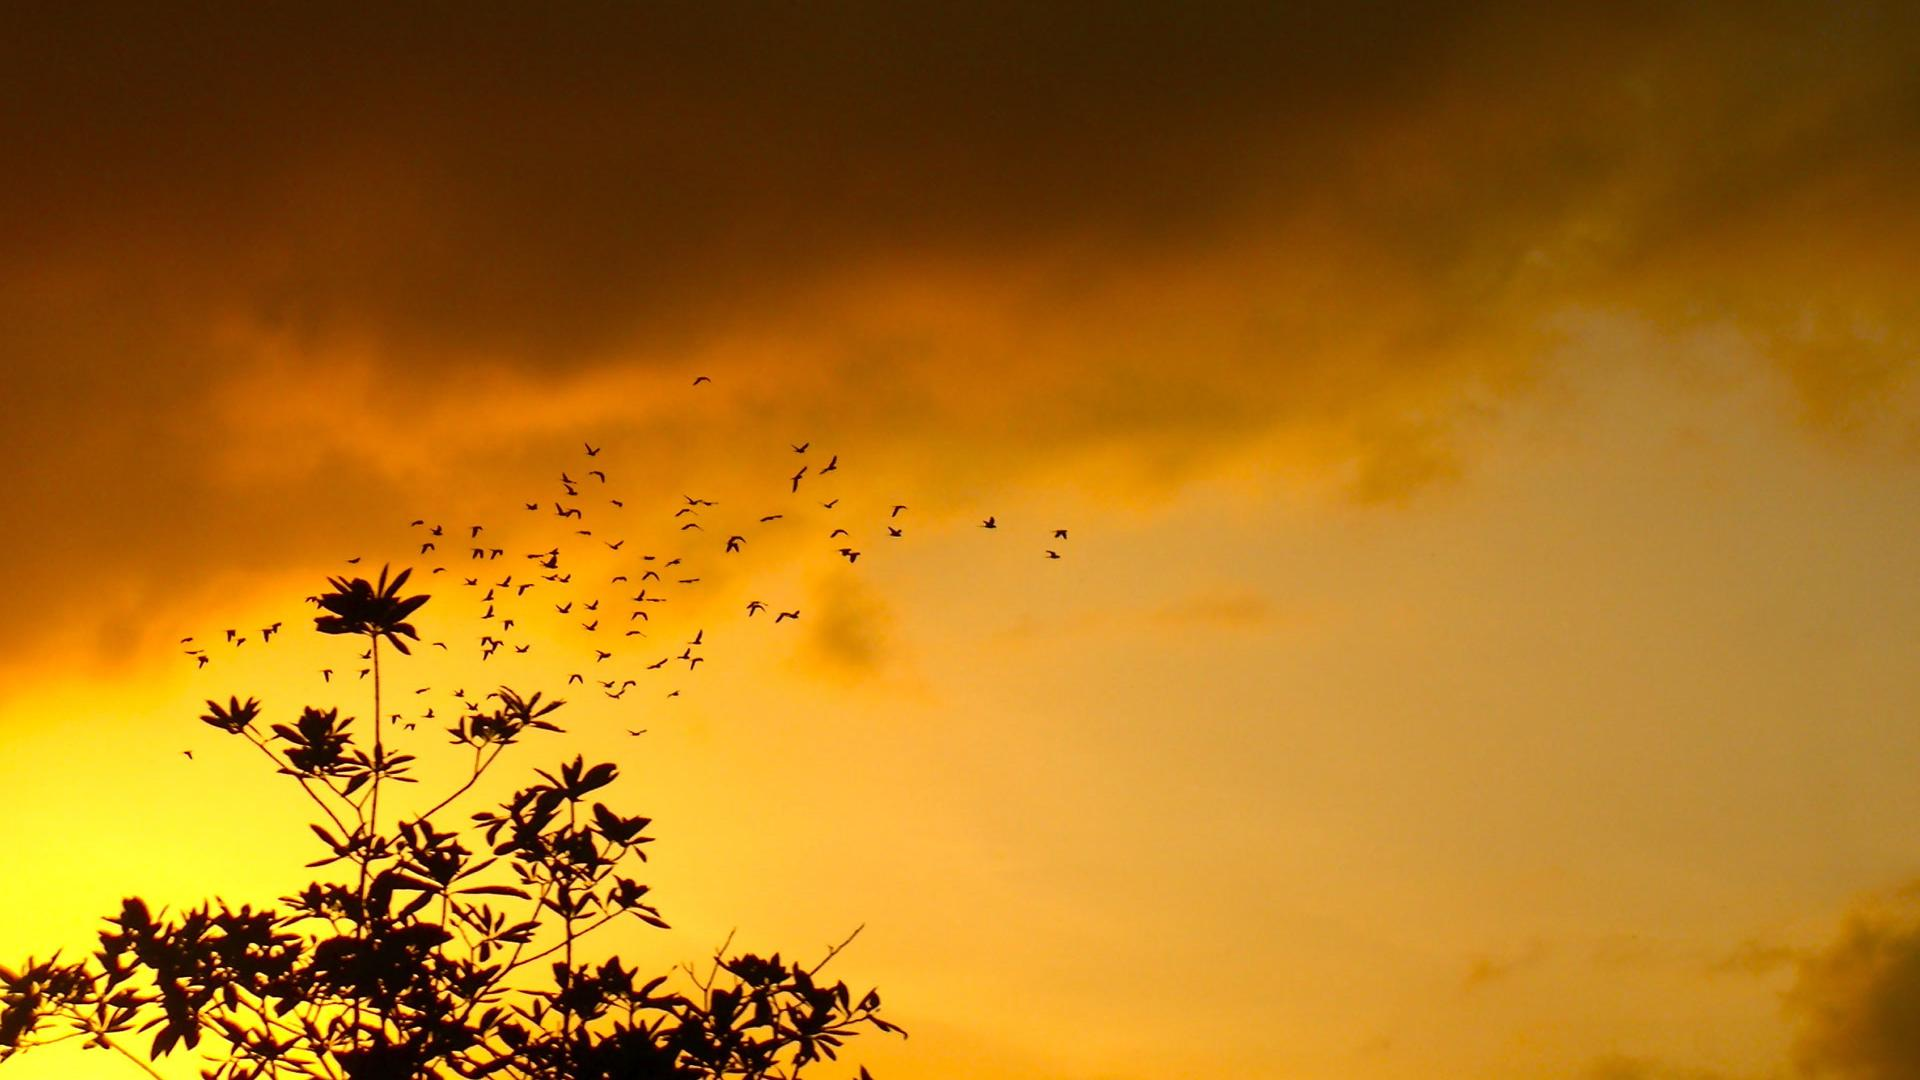 Beautiful Nature Sunset And Birds Figure Background Hd Wallpapers Hd Backgrounds Tumblr Backgrounds Images Pictures